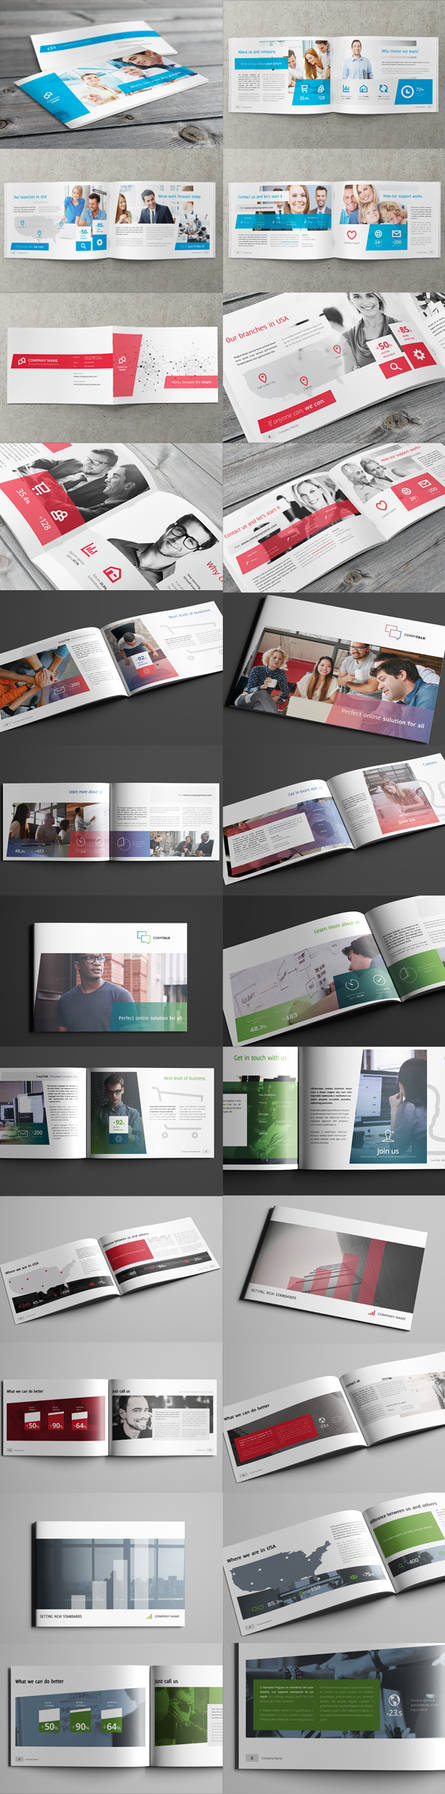 3x Business / Corporate Multi-purpose A4 Brochures